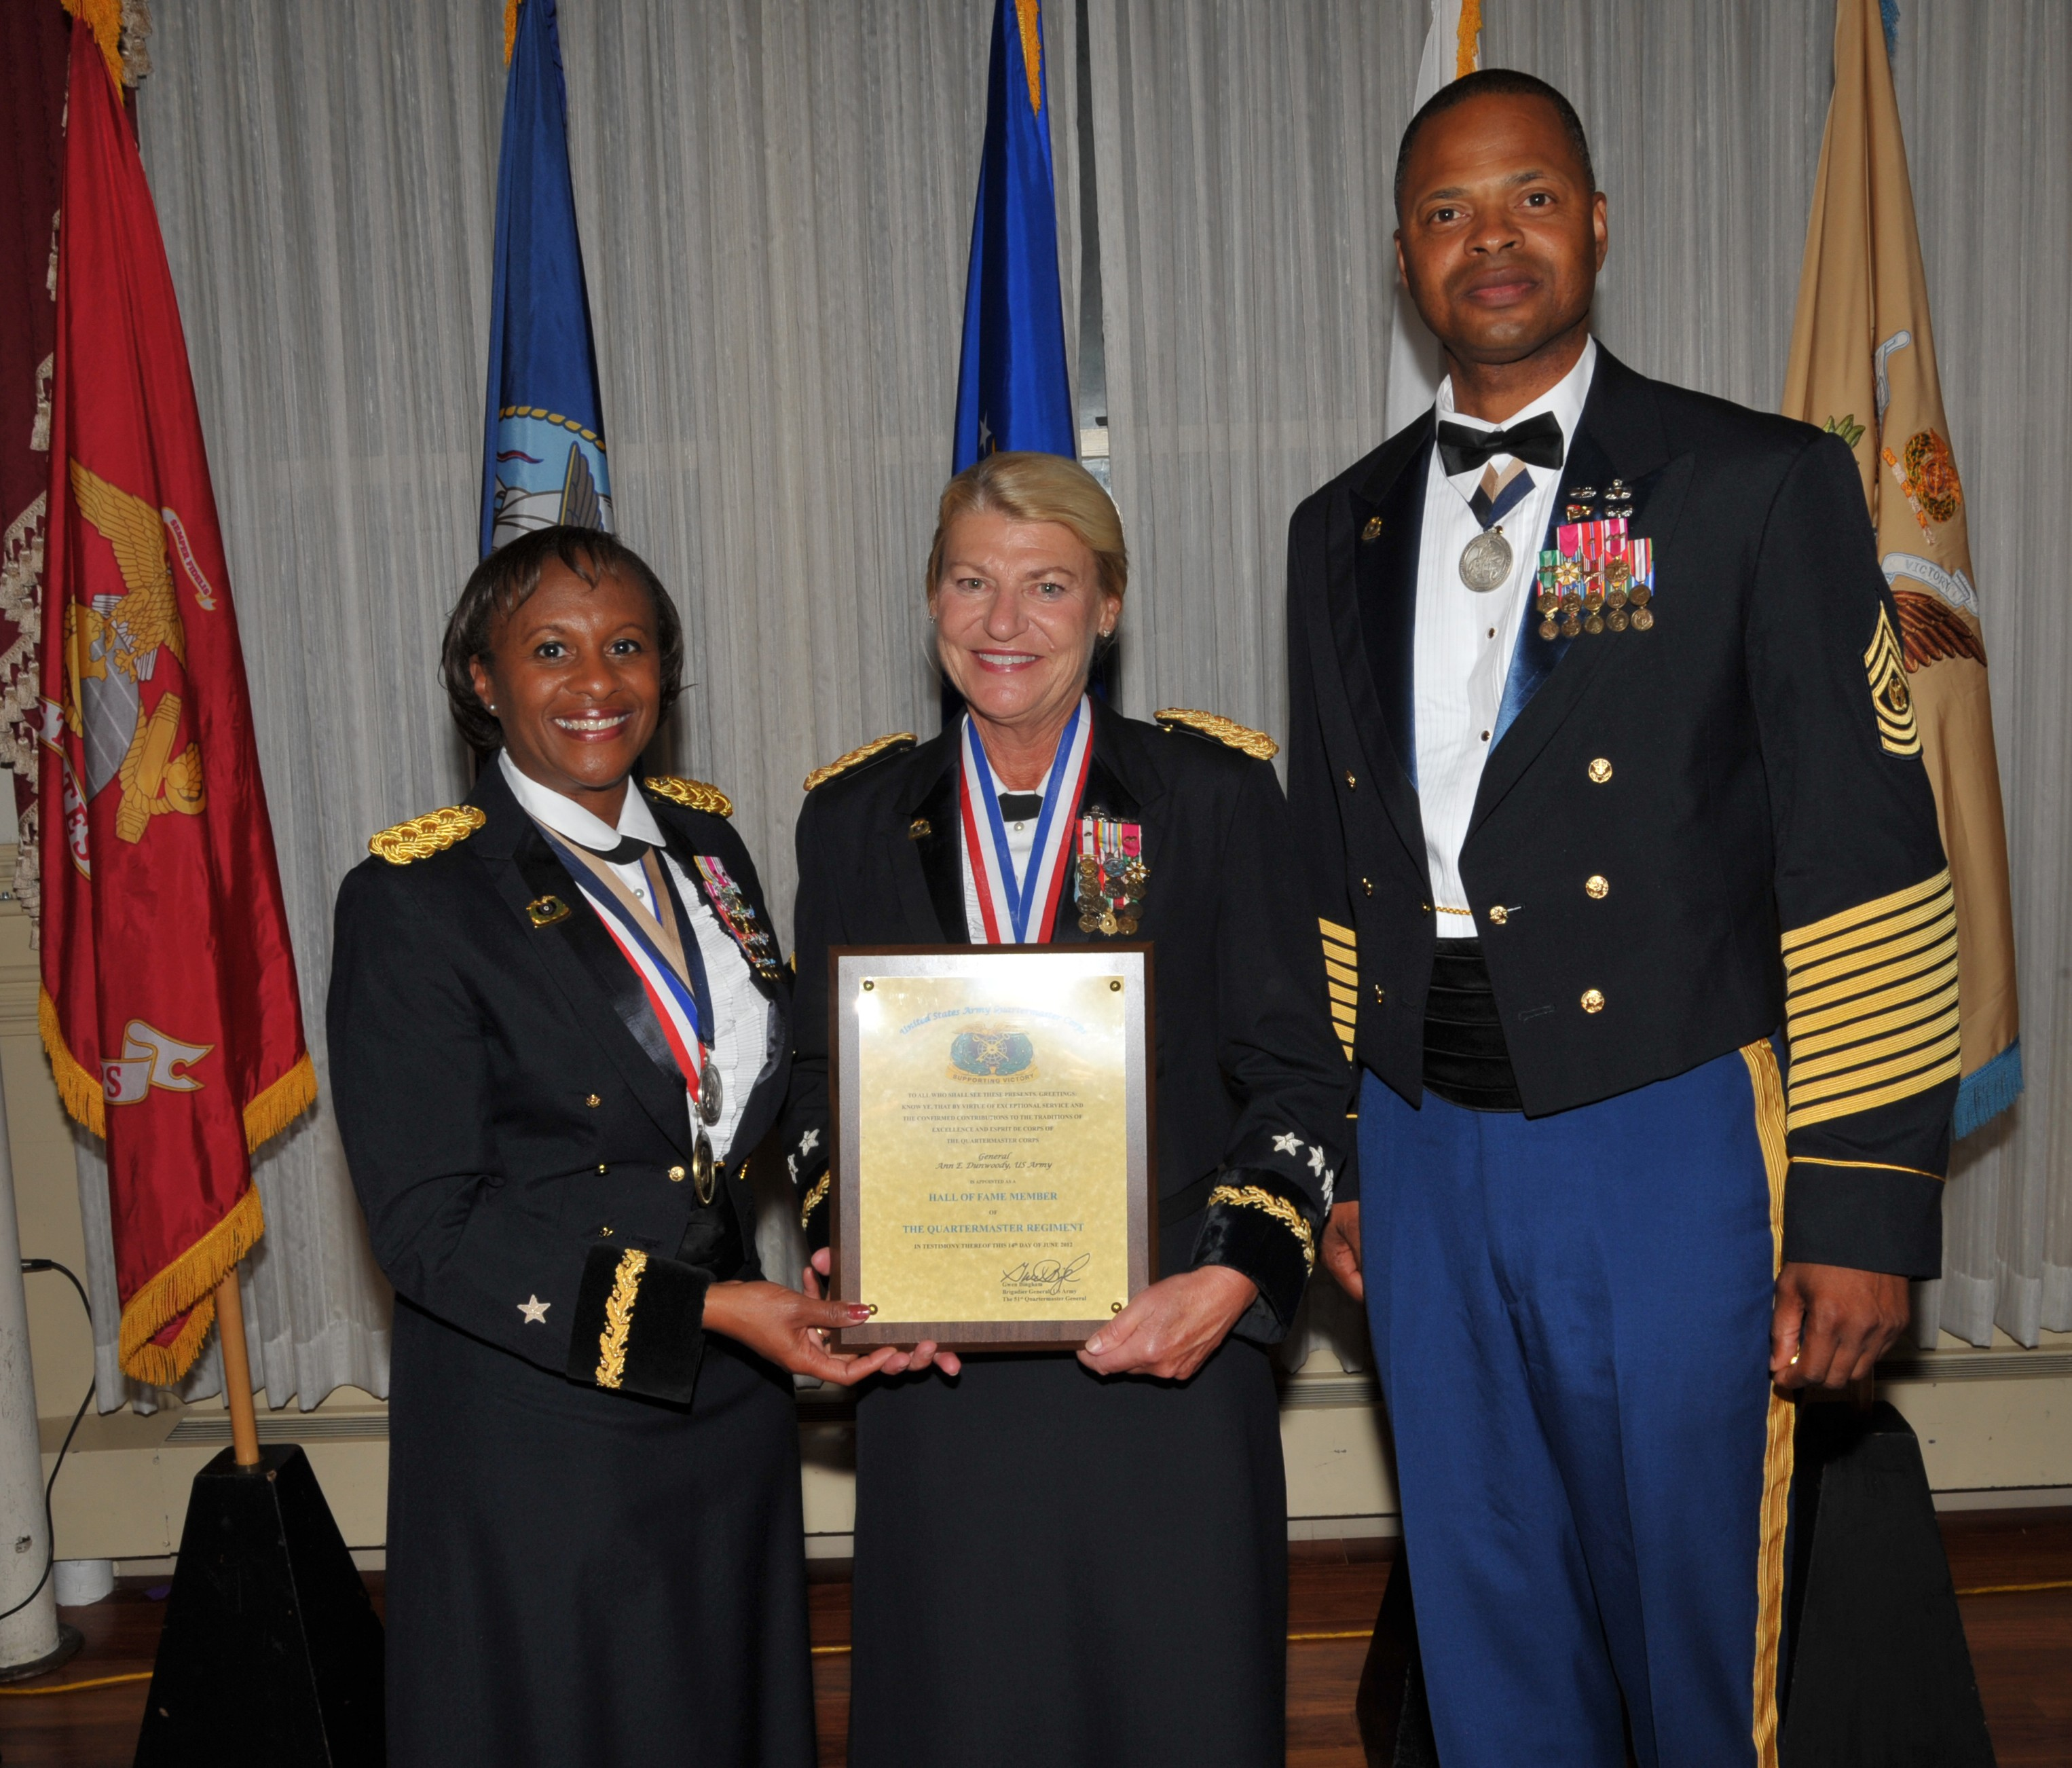 Dunwoody recognized for logistics excellence | Article ...